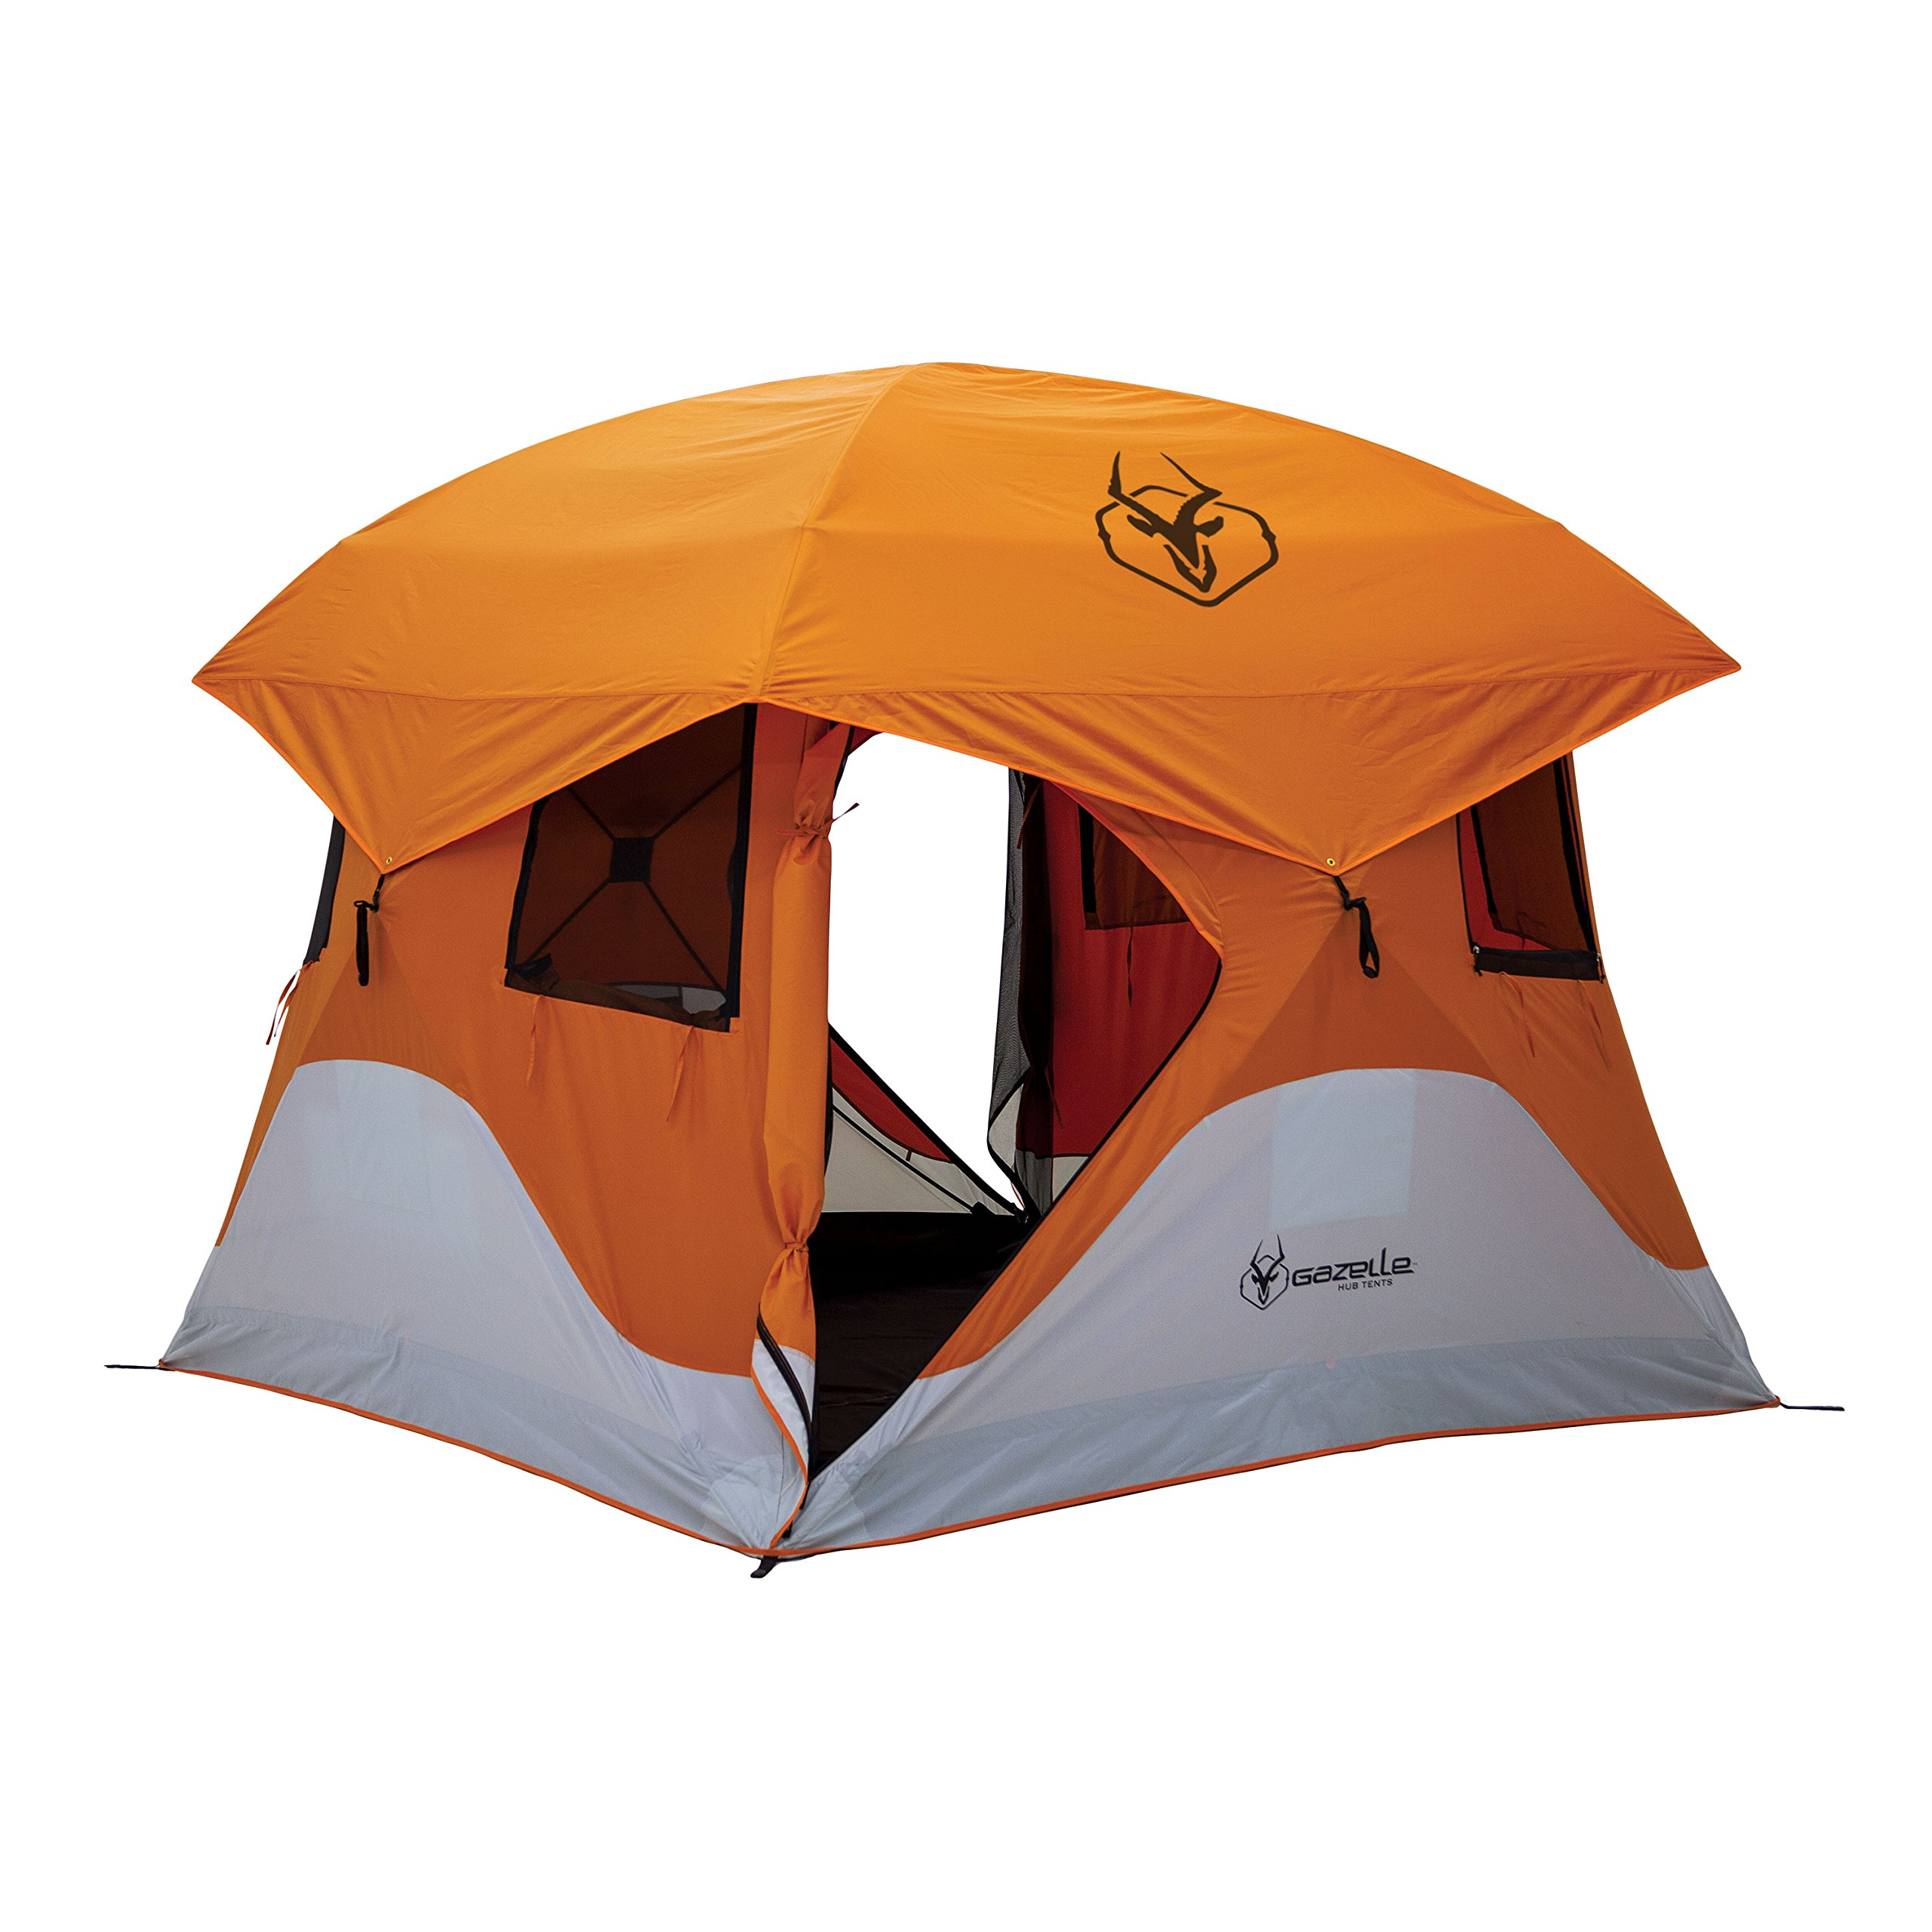 Gazelle T4 Camping Hub Tent (4-person)